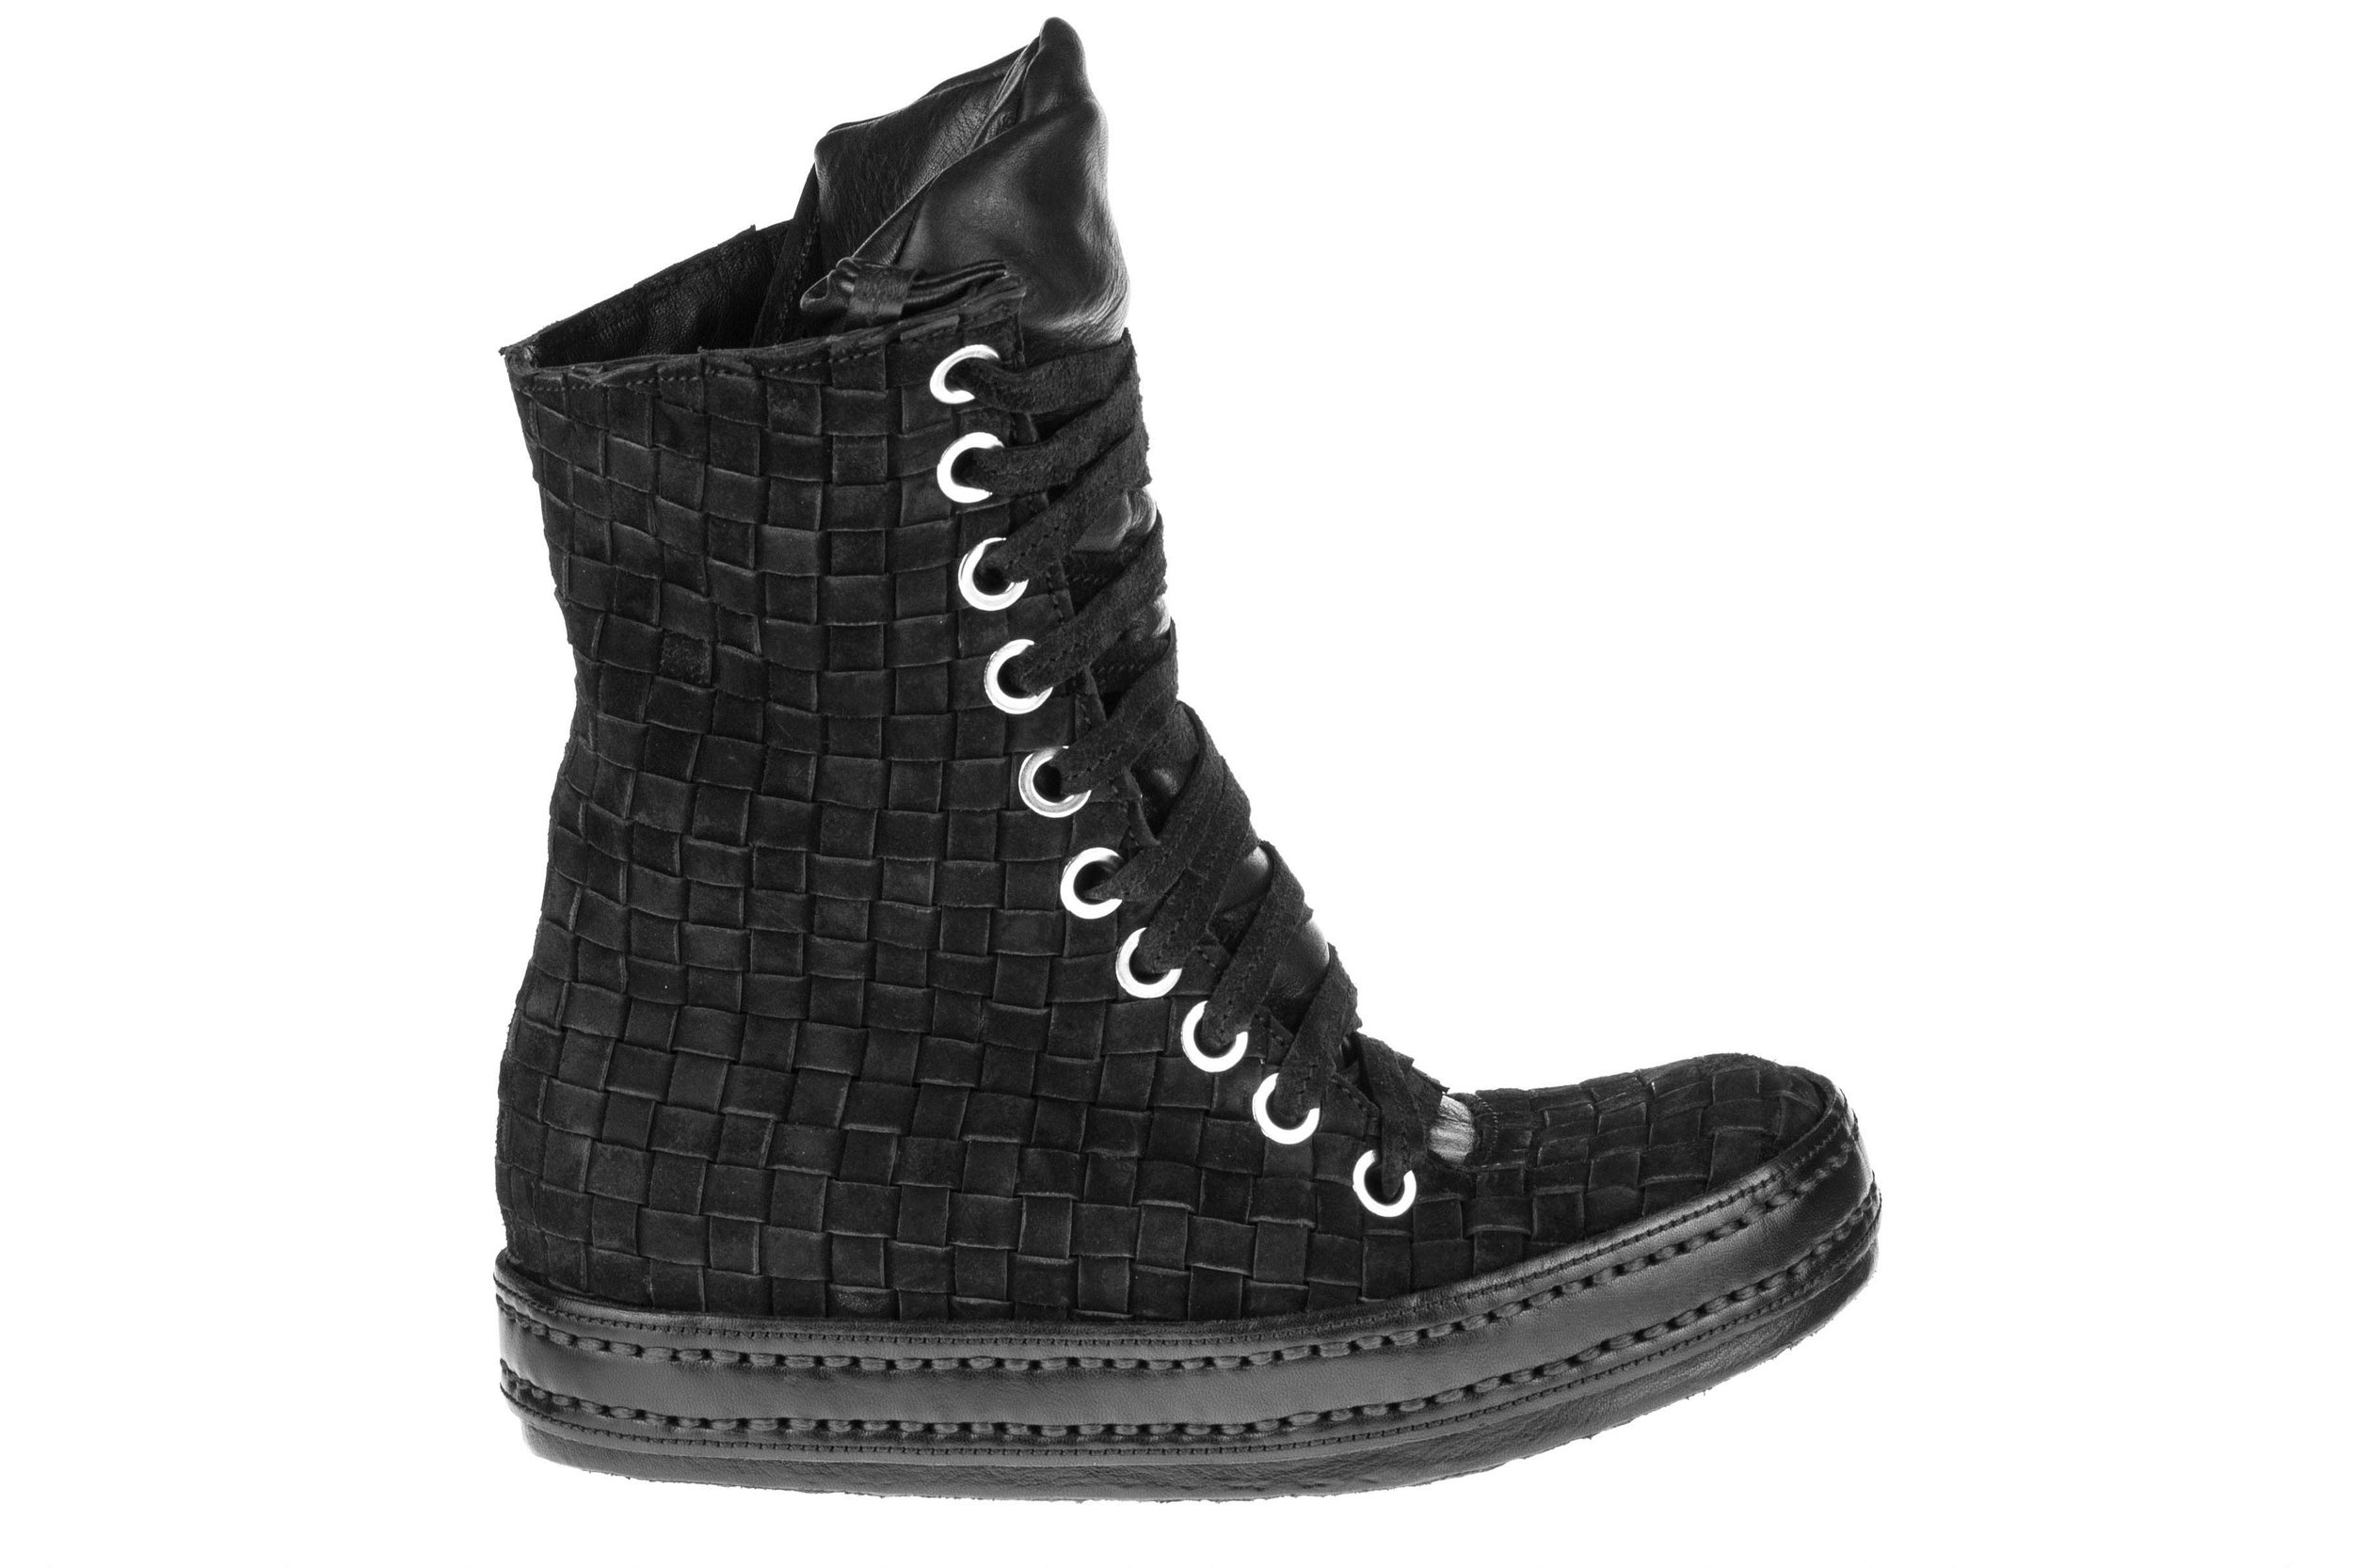 10Hole Woven Black Suede